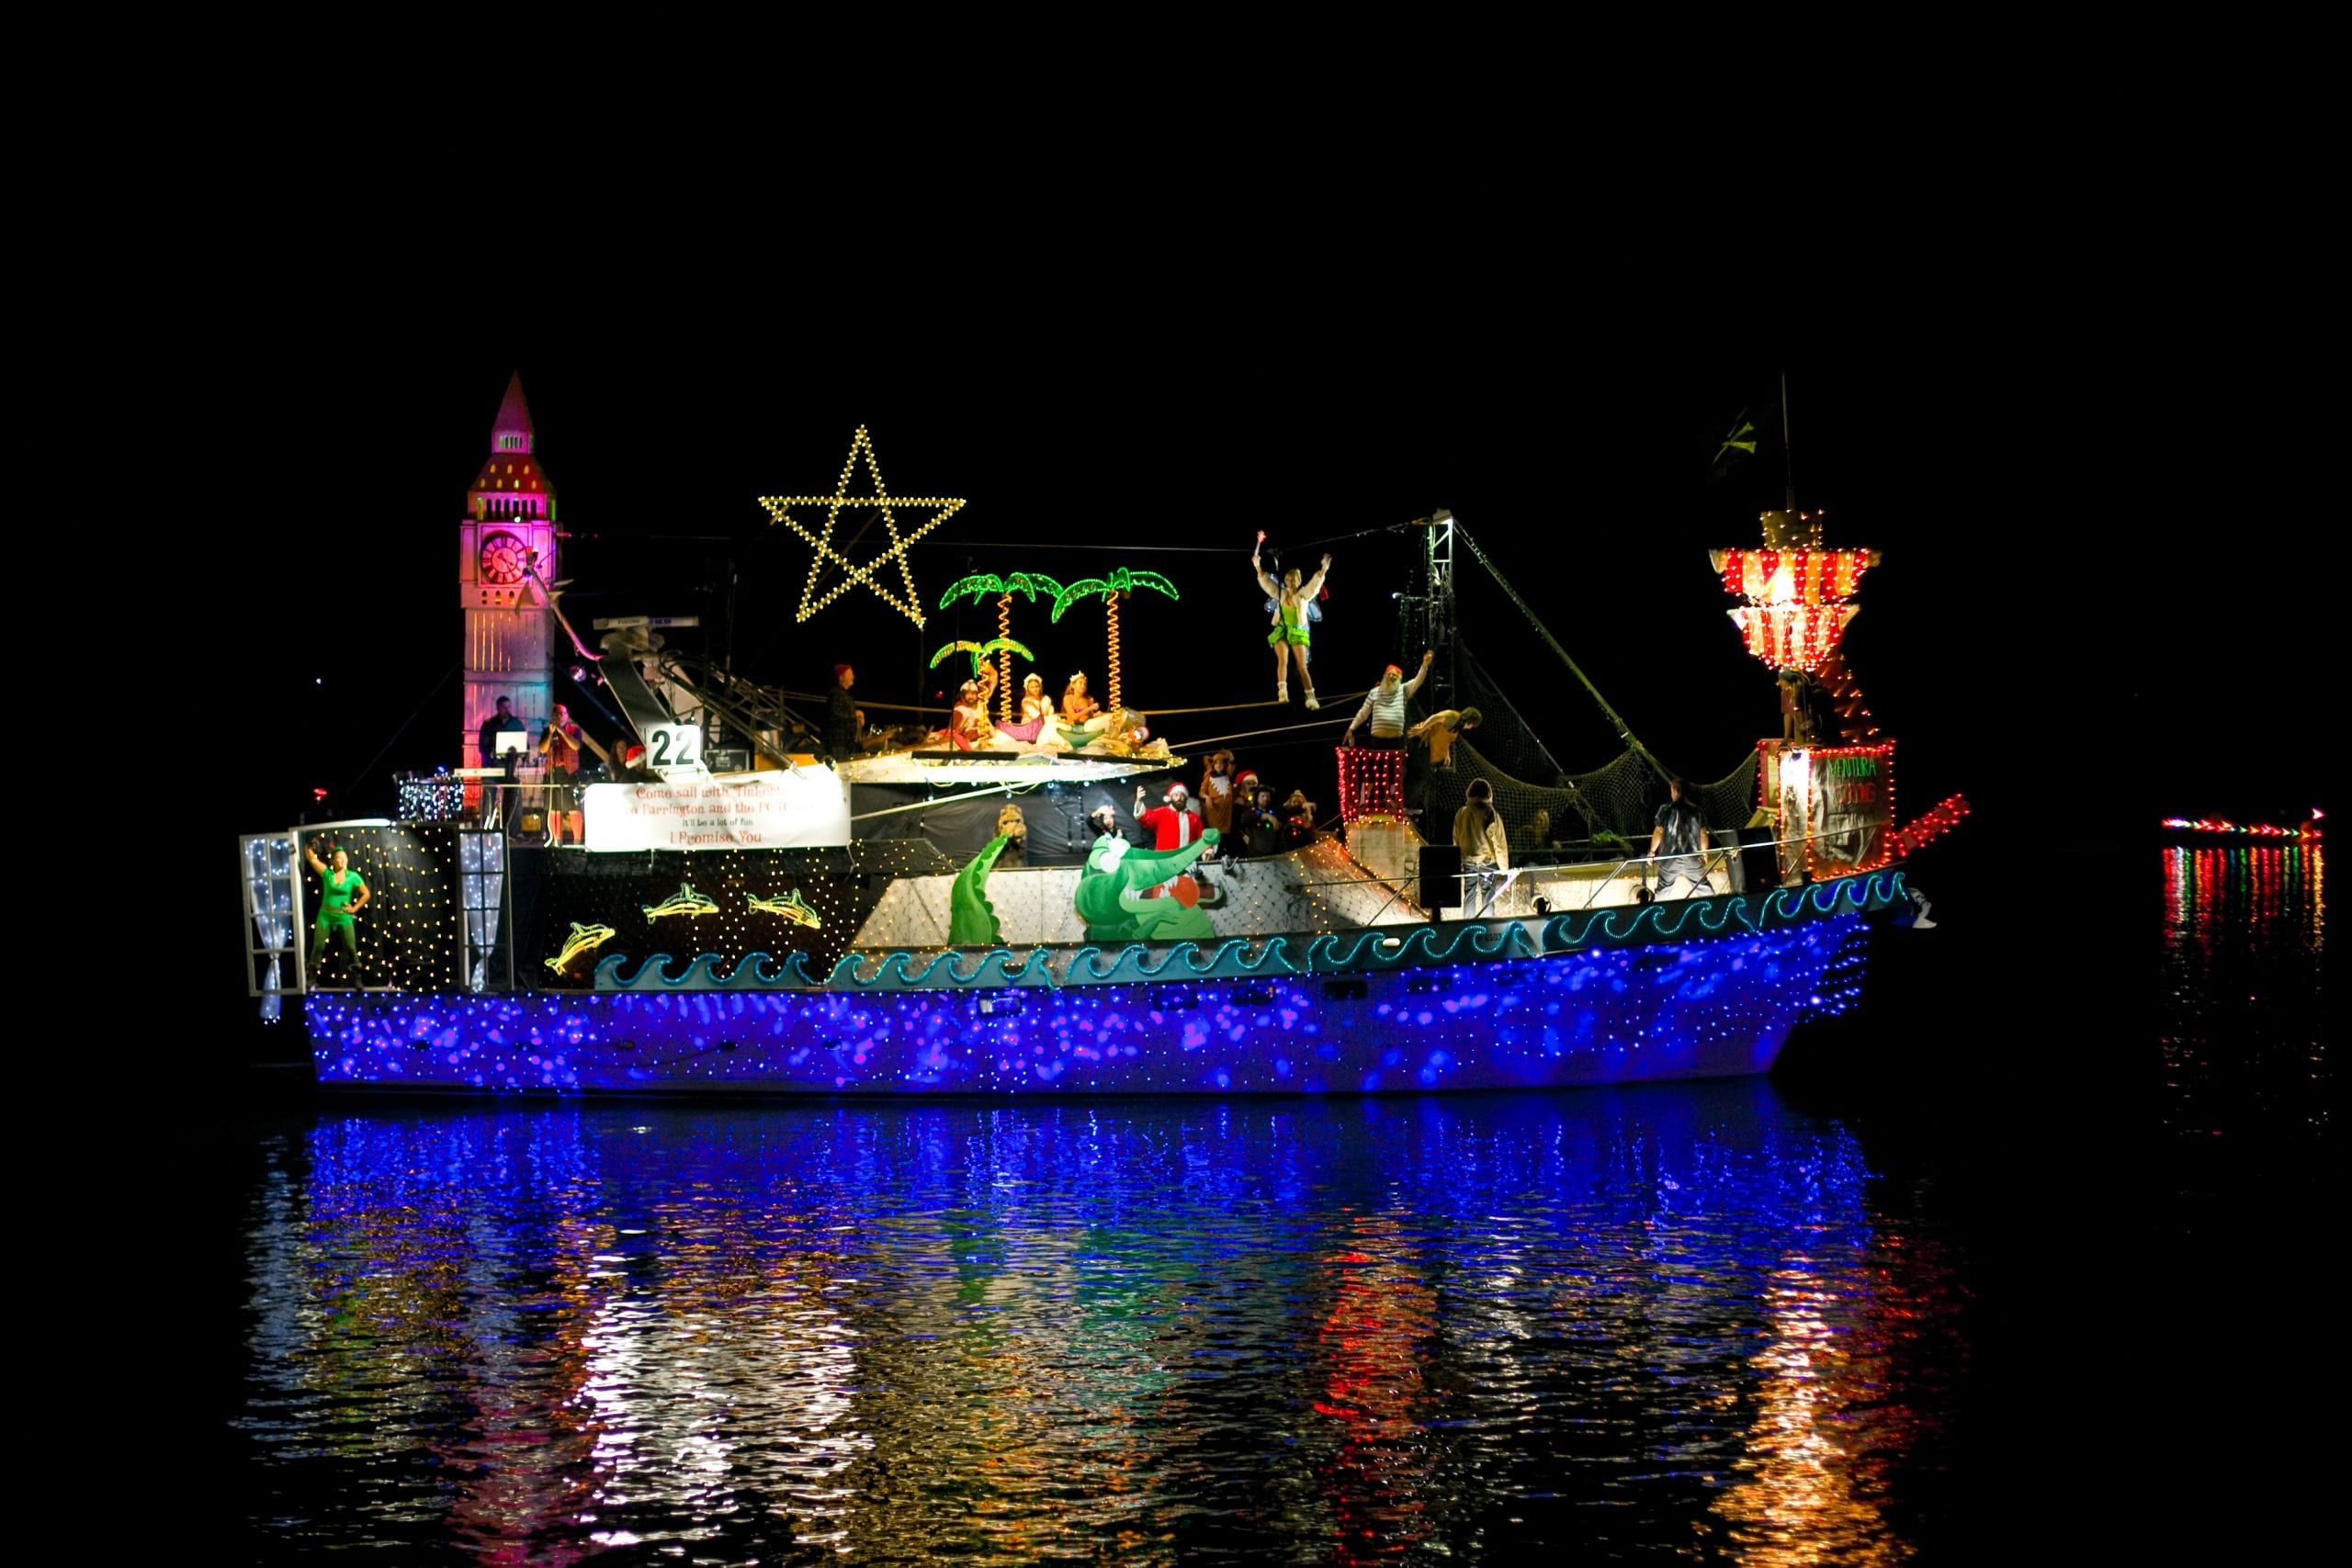 2017 Parade of Lights Best in Show Boat